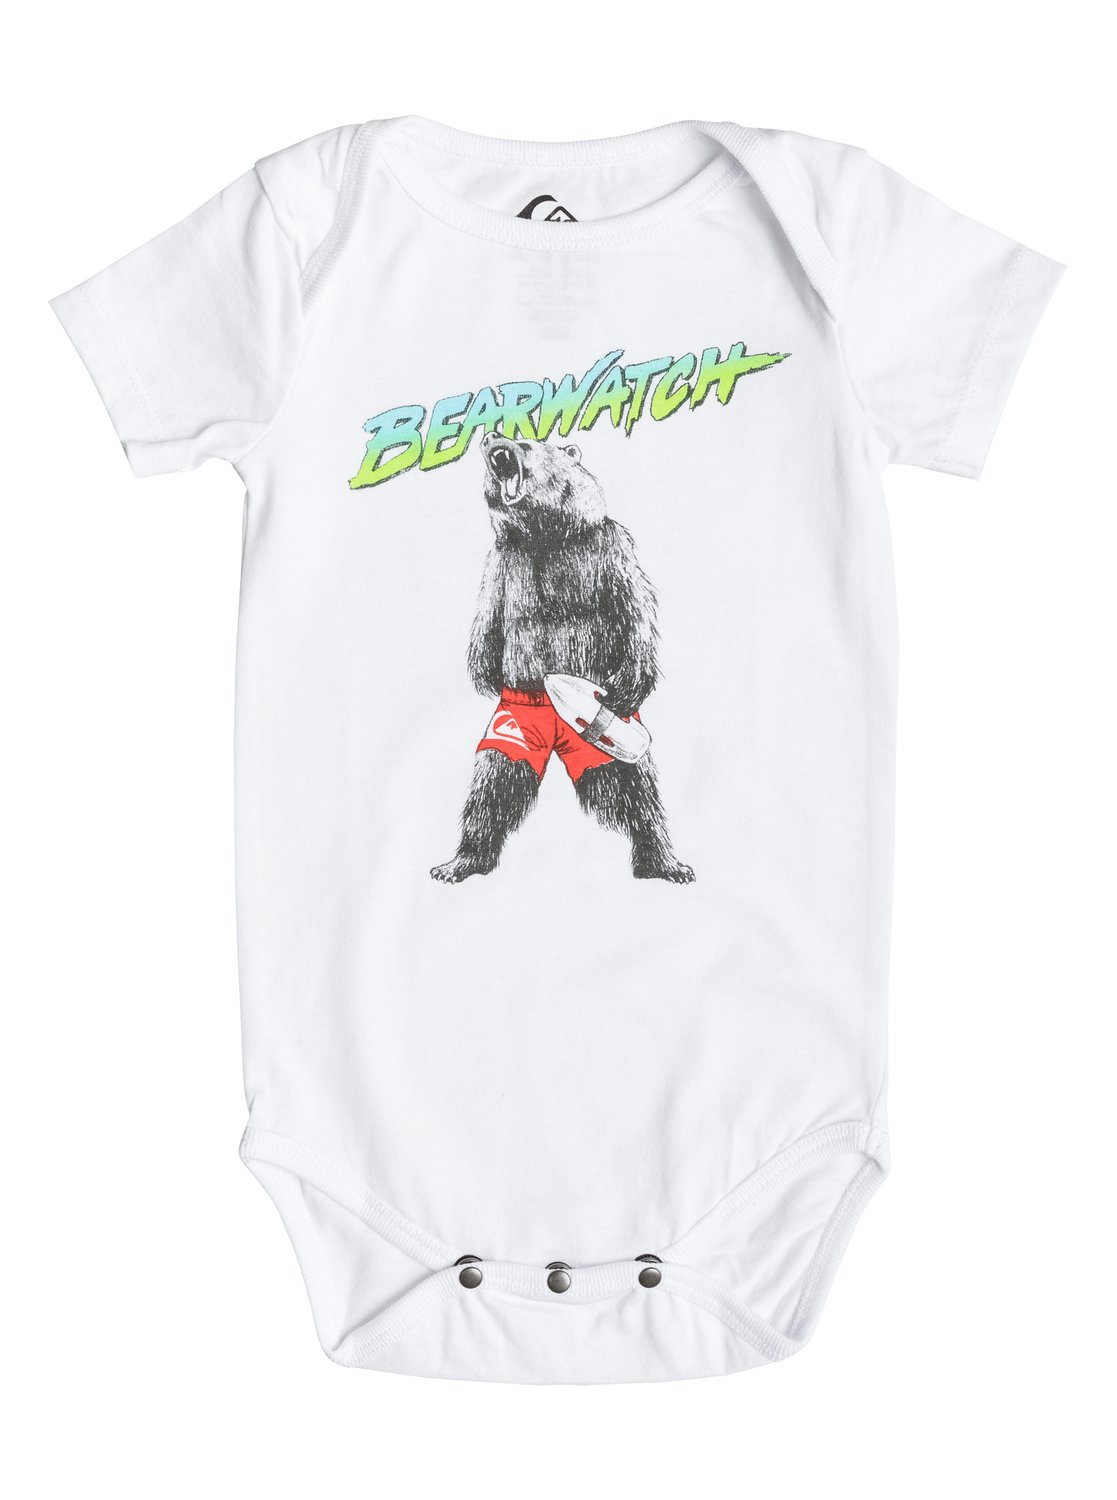 Baby's Body Bearwatch T-Shirt от Quiksilver RU